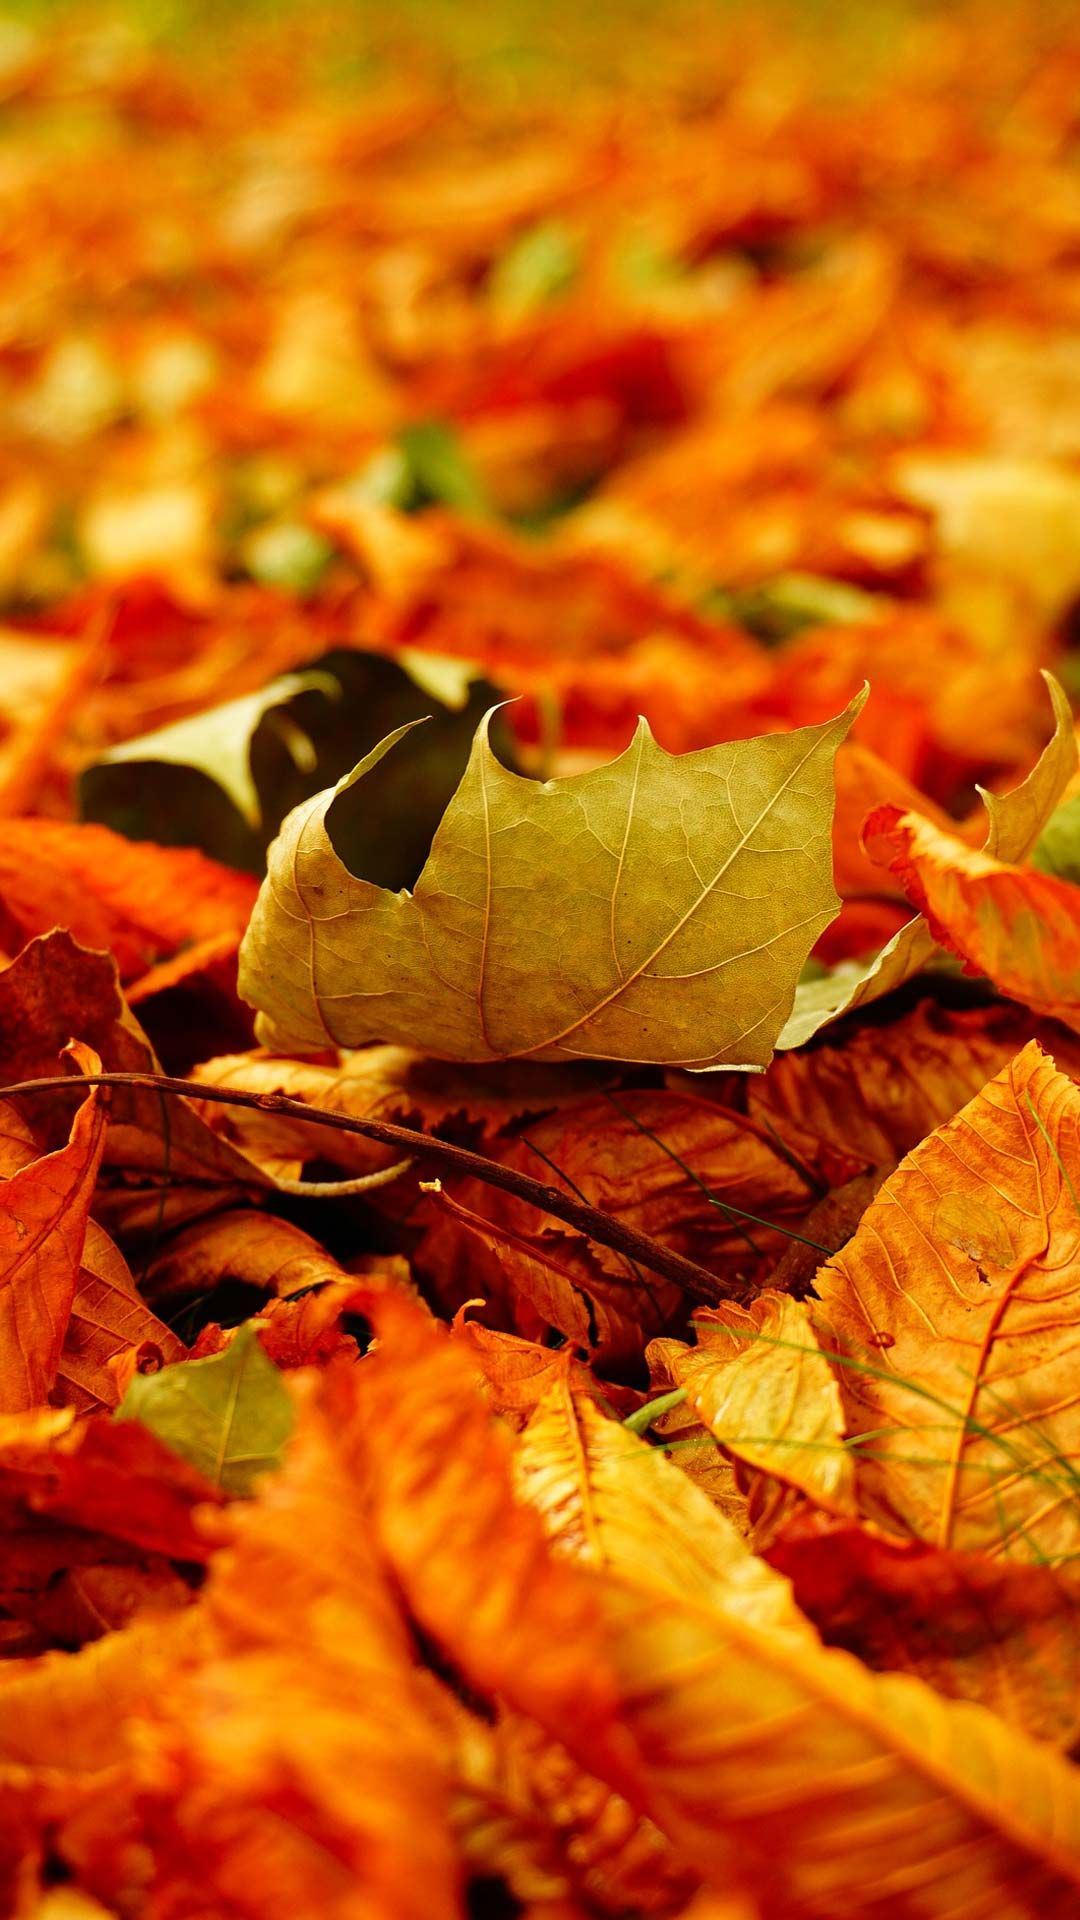 20 Fall Foliage Wallpaper Phone Backgrounds For Free Download Cute Fall Wallpaper Fall Background Wallpaper Android Wallpaper Fall